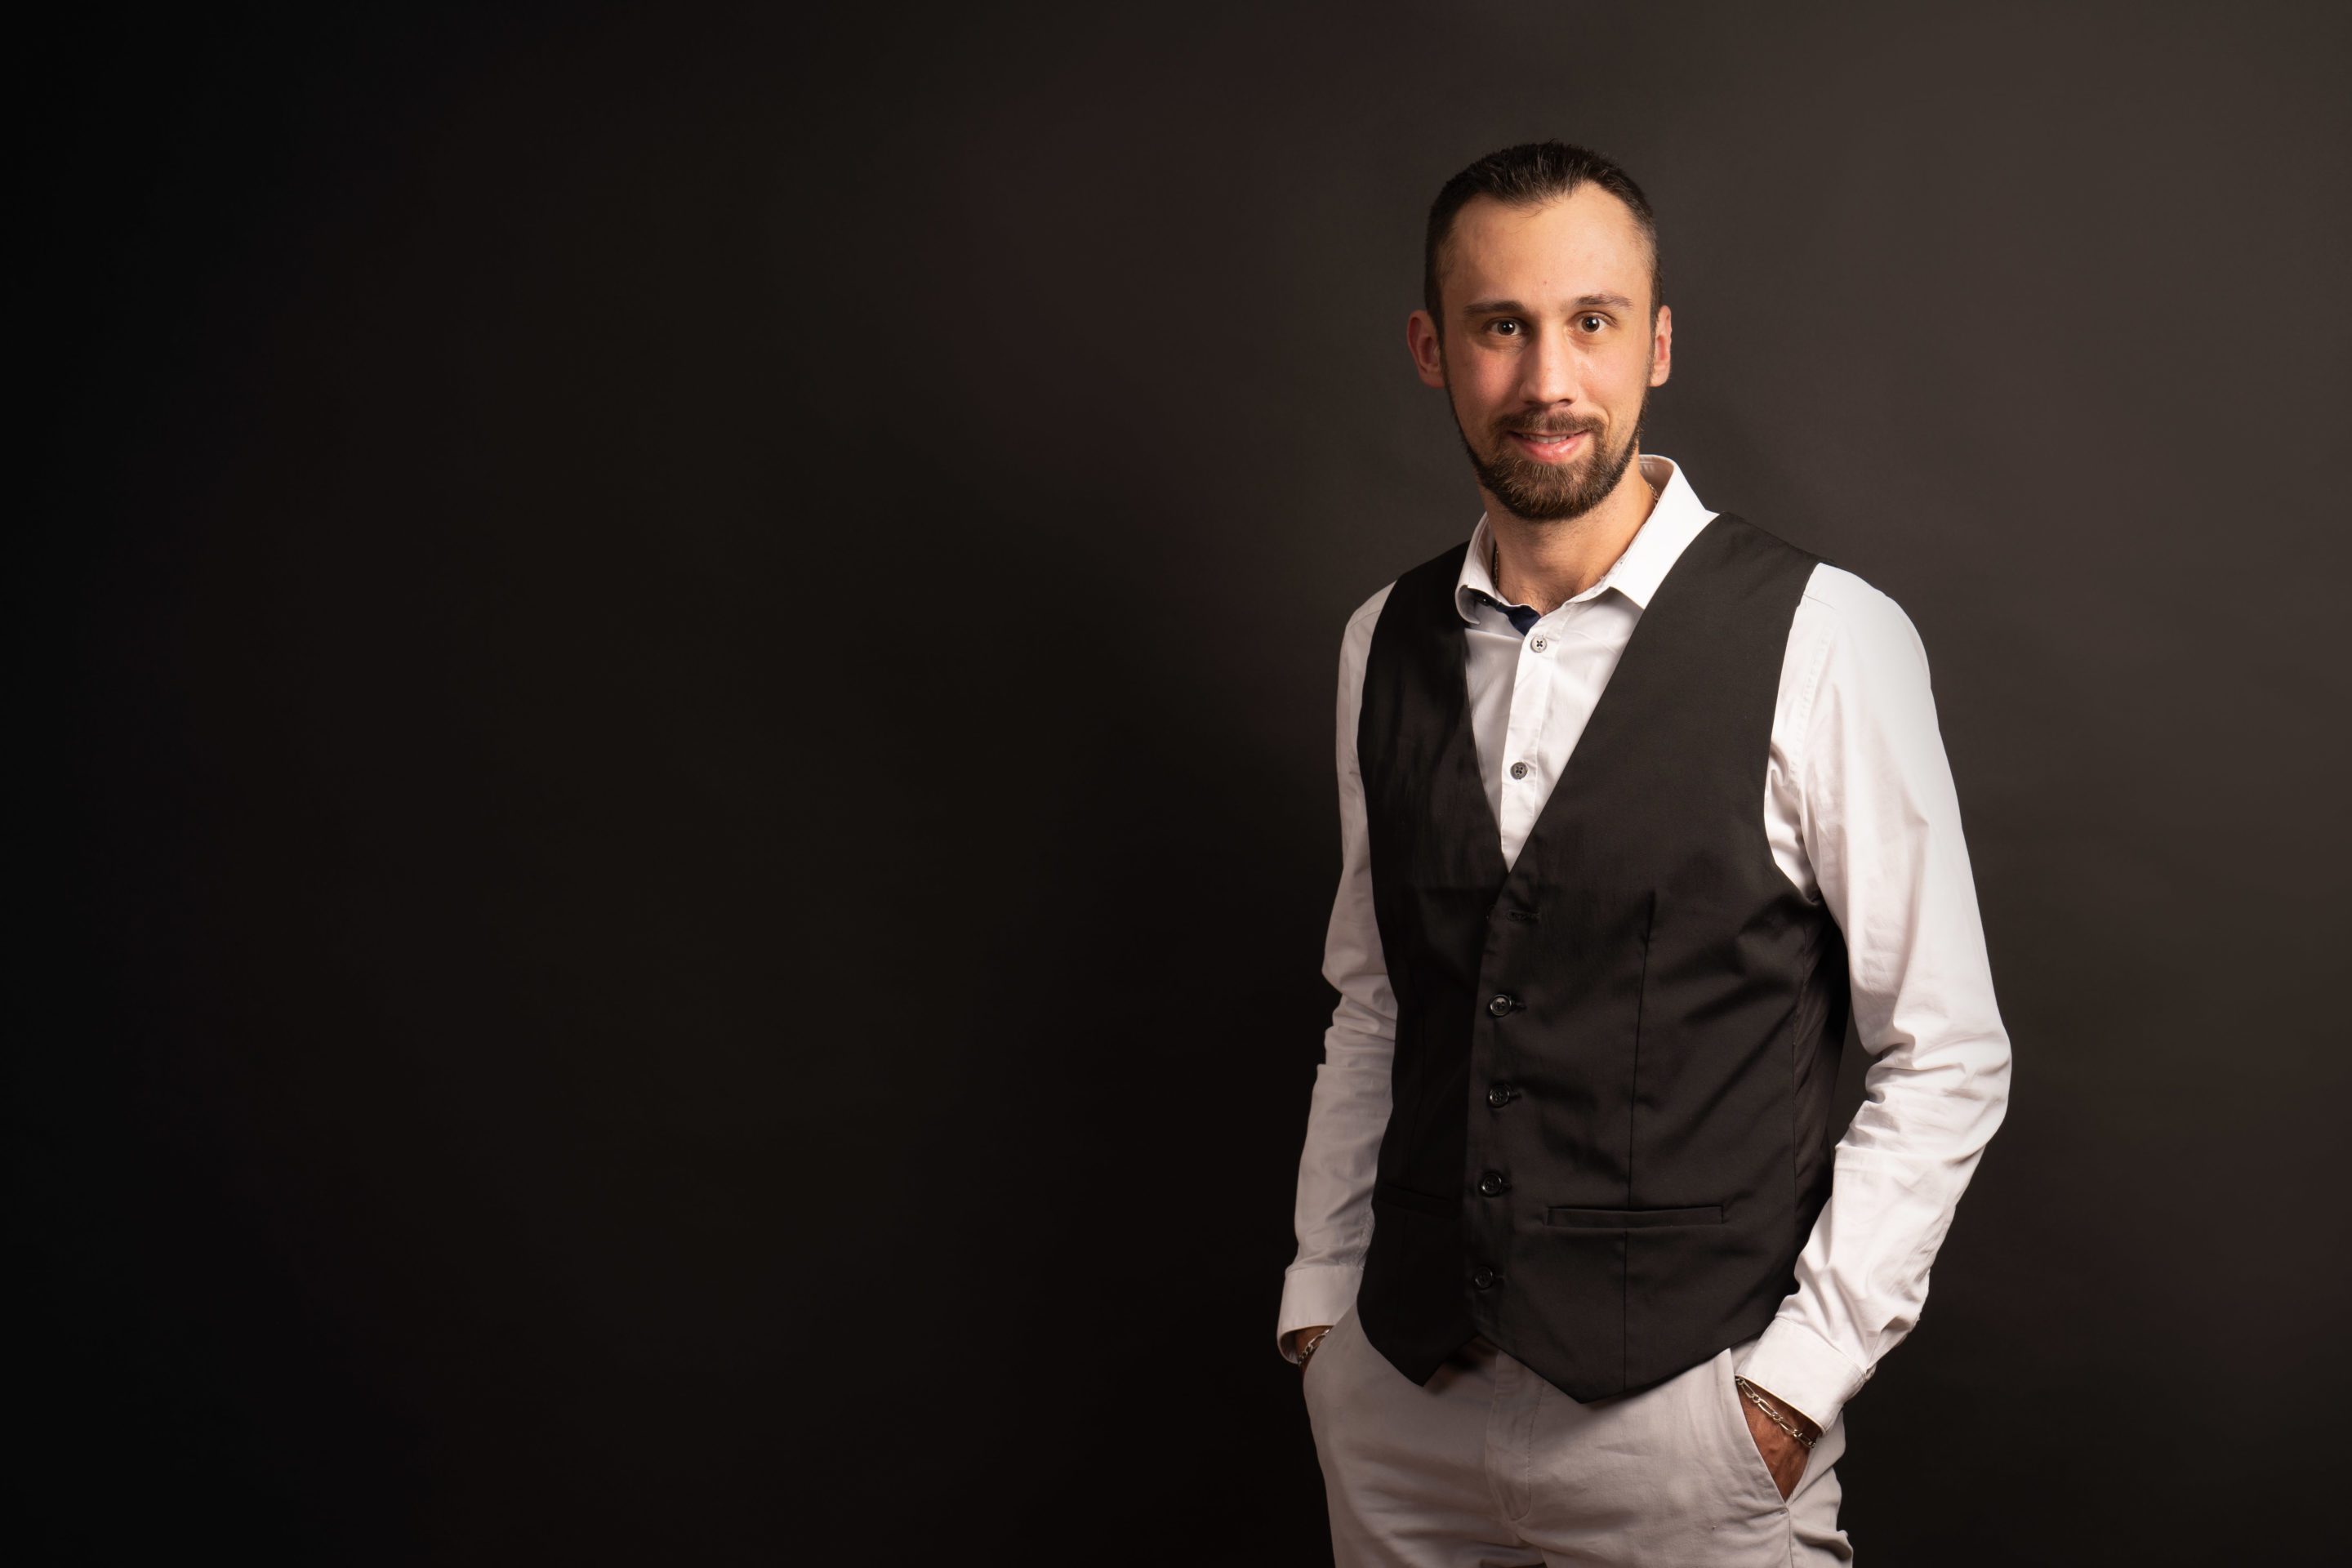 Shooting corporate homme-Nathalie Rodriguez Photographie